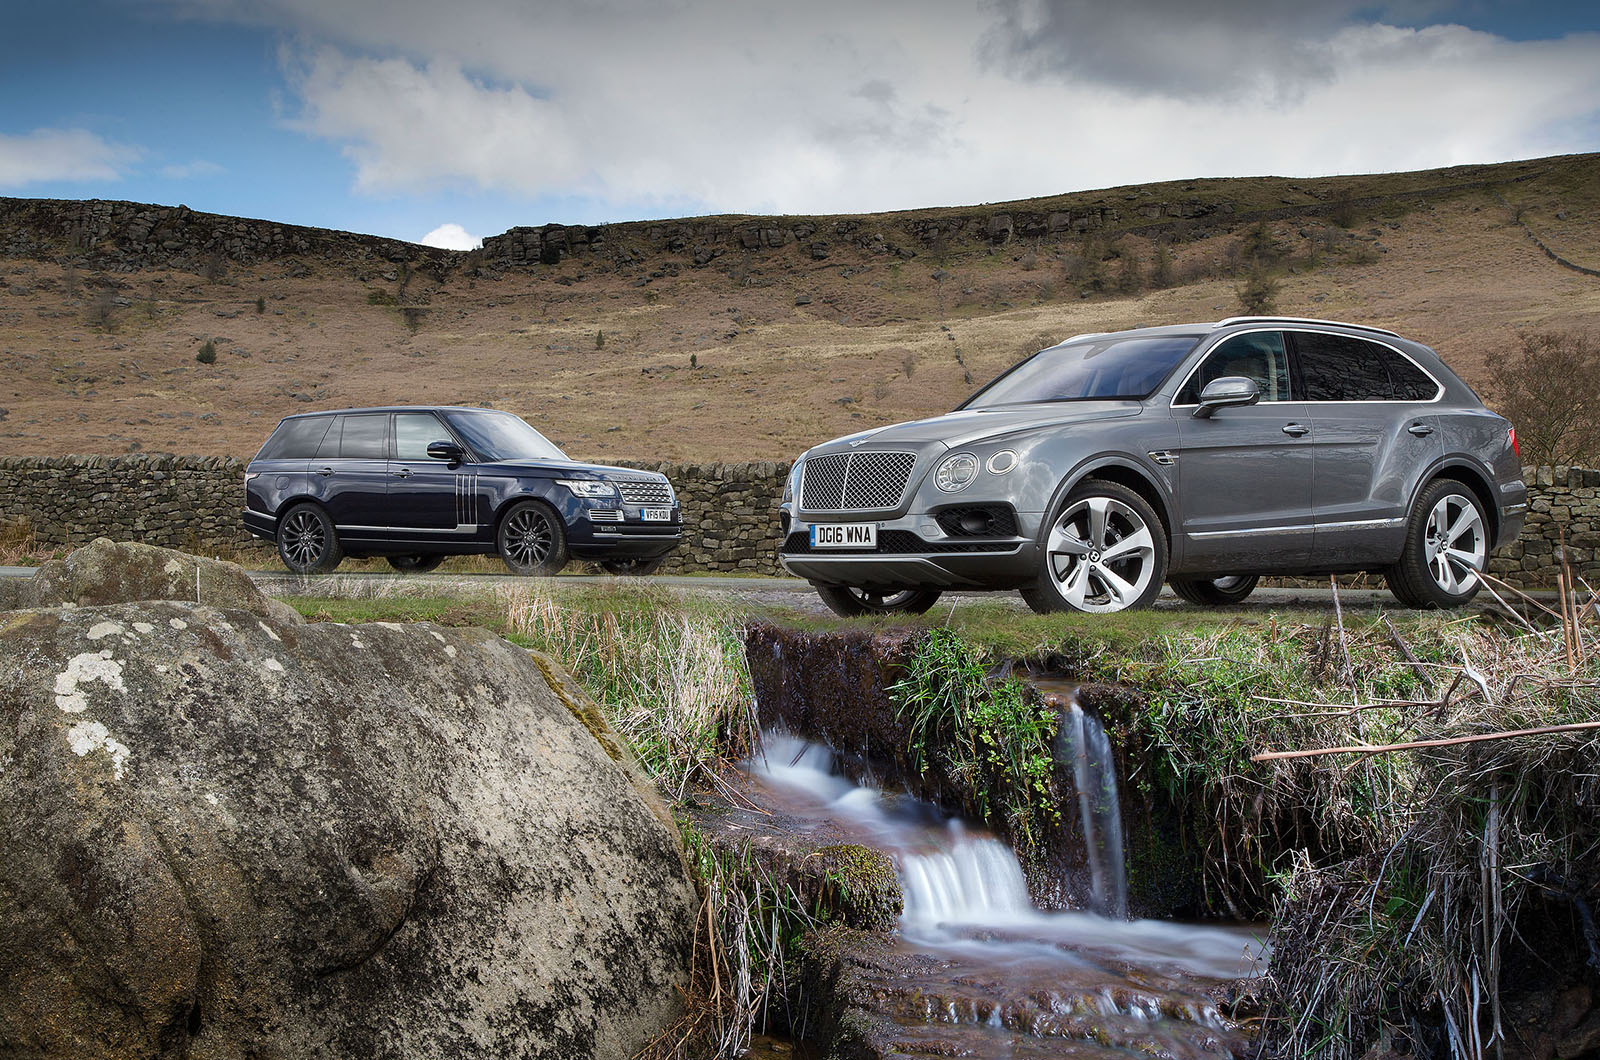 Bentley Bentayga Vs Range Rover Luxury Suv Comparison Autocar